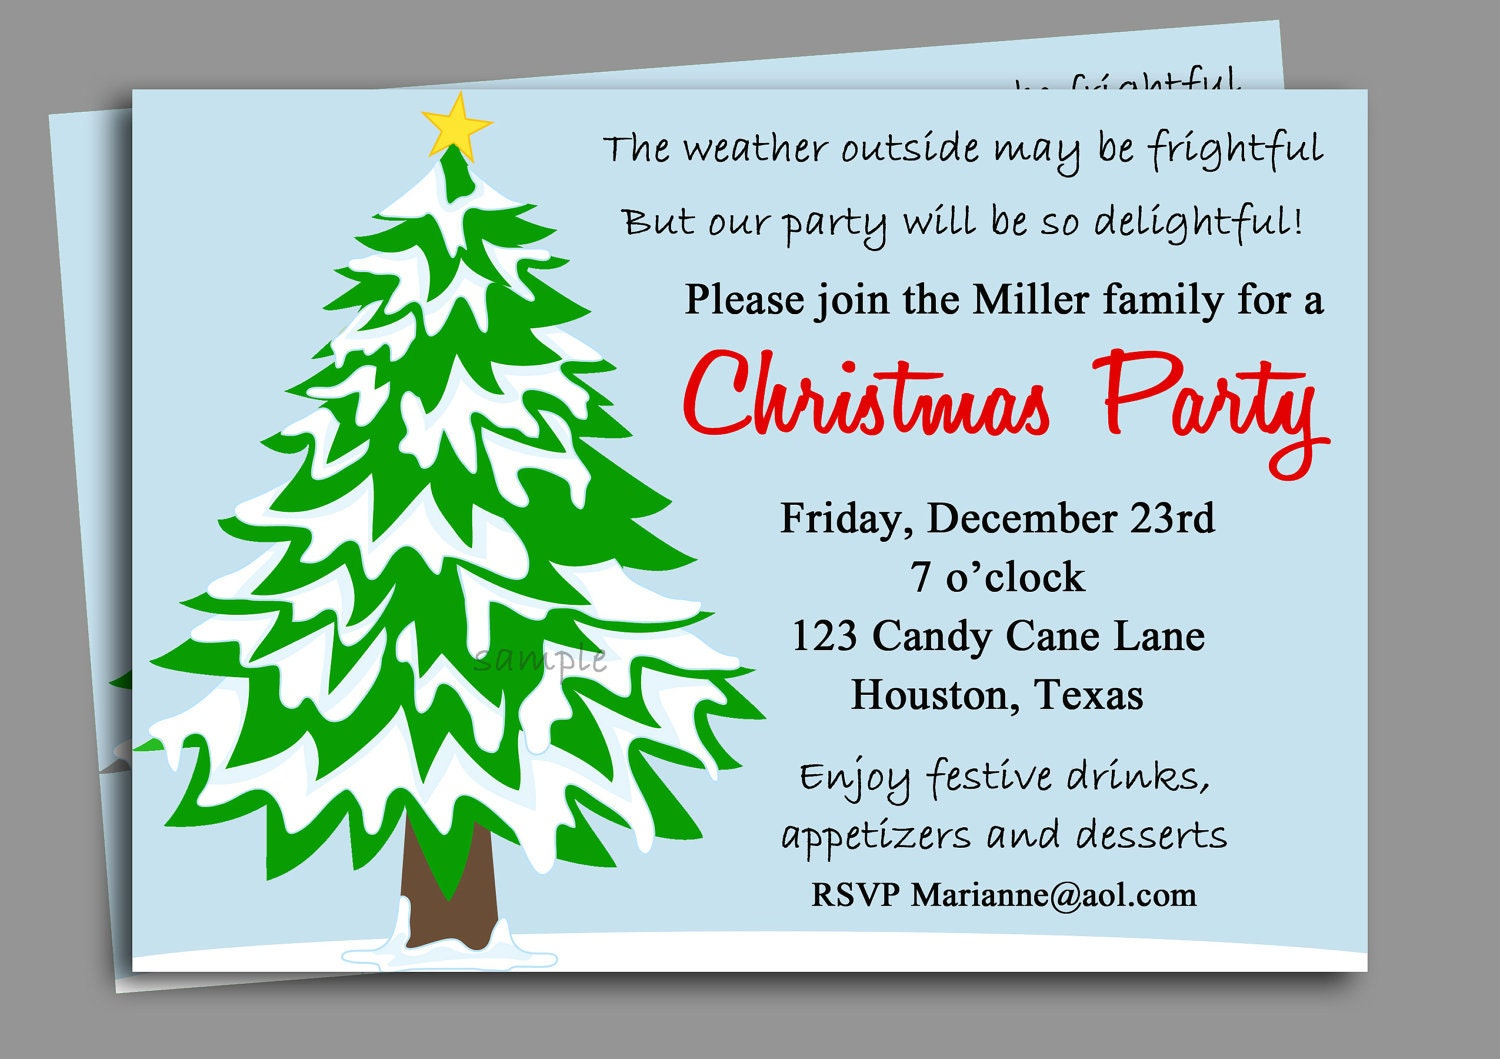 Christmas Party Invitation Printable Winter Wonderland – Invitation to a Christmas Party